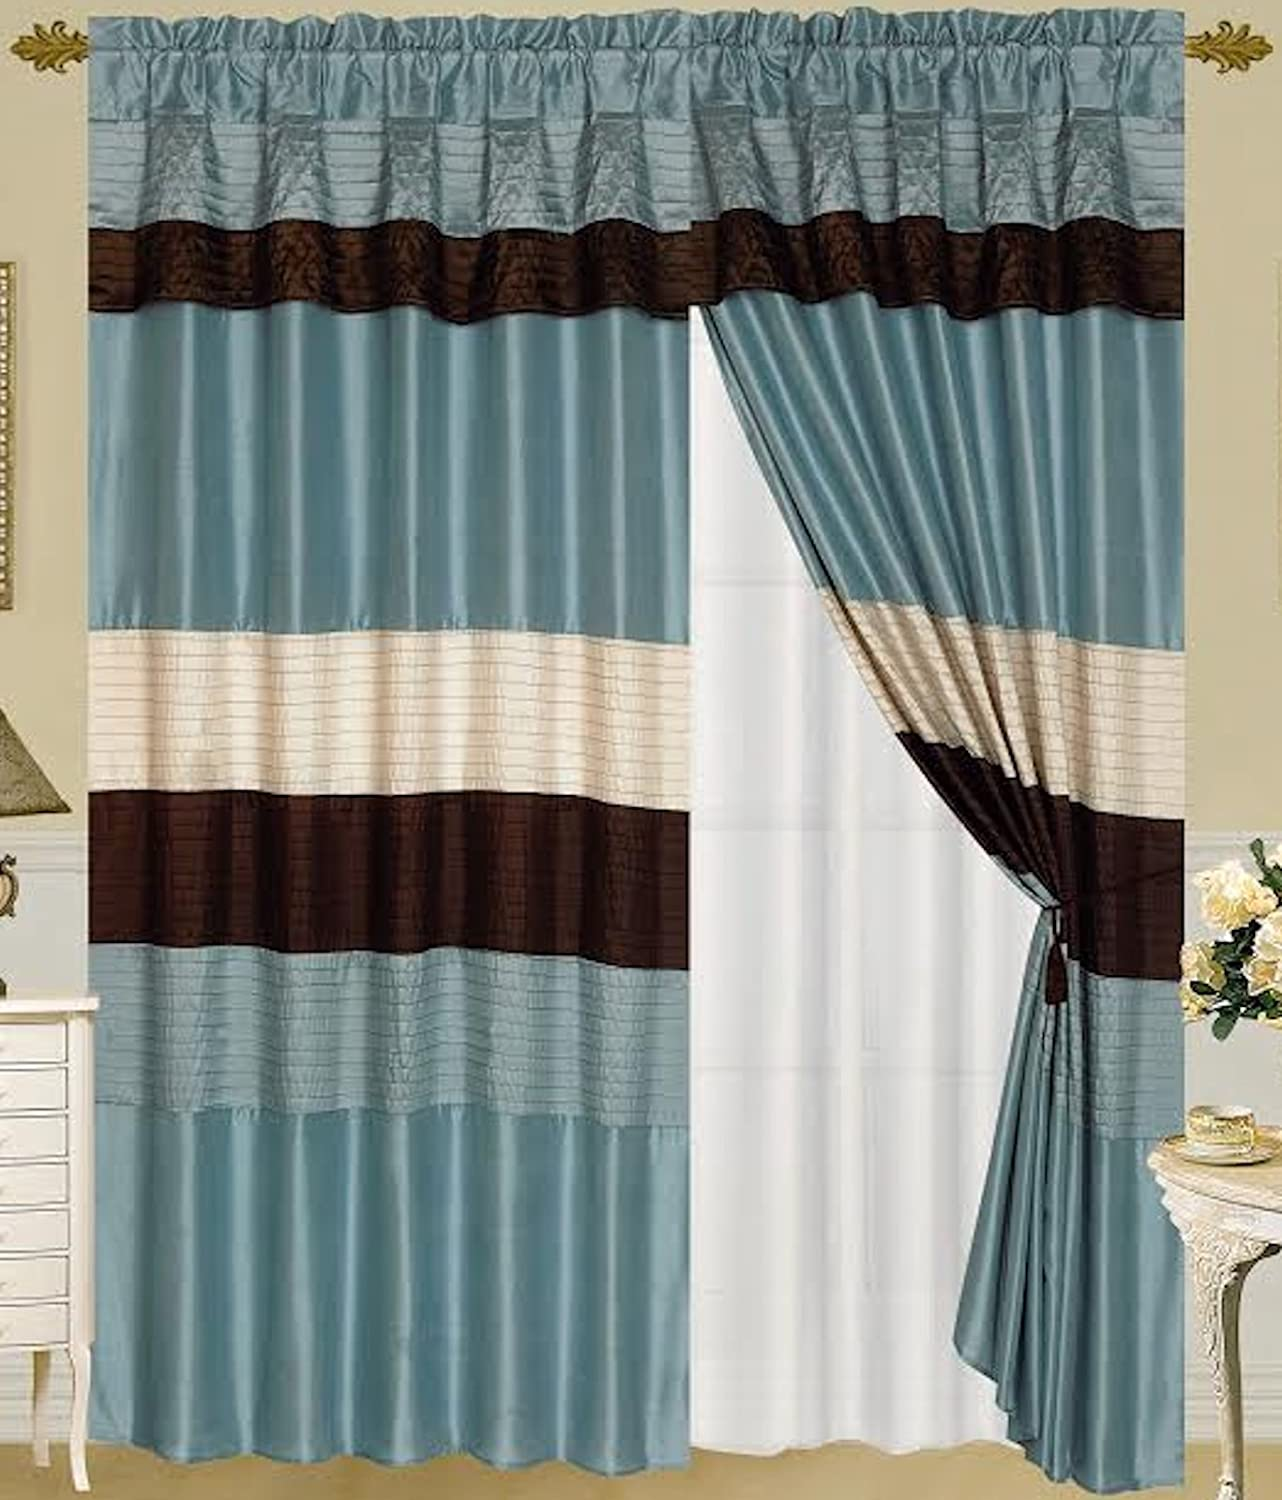 Venetian Blue, Brown, and Beige Faux Silk Window Curtain / Drape Set with Attached Valance and Sheer Lining